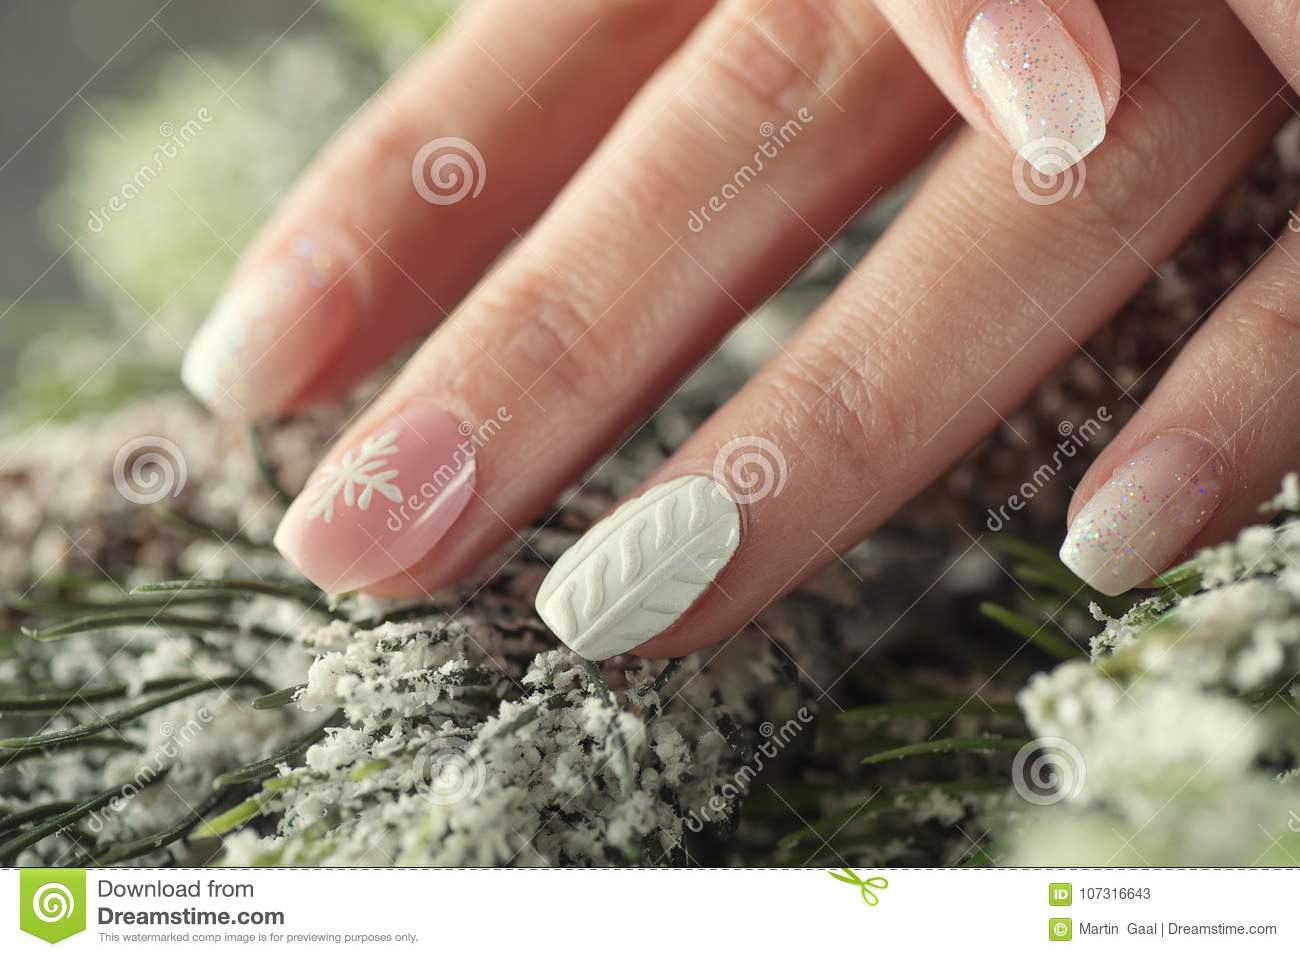 Winter Manicure Design Nails Soft Pink And White Colour Stock Image